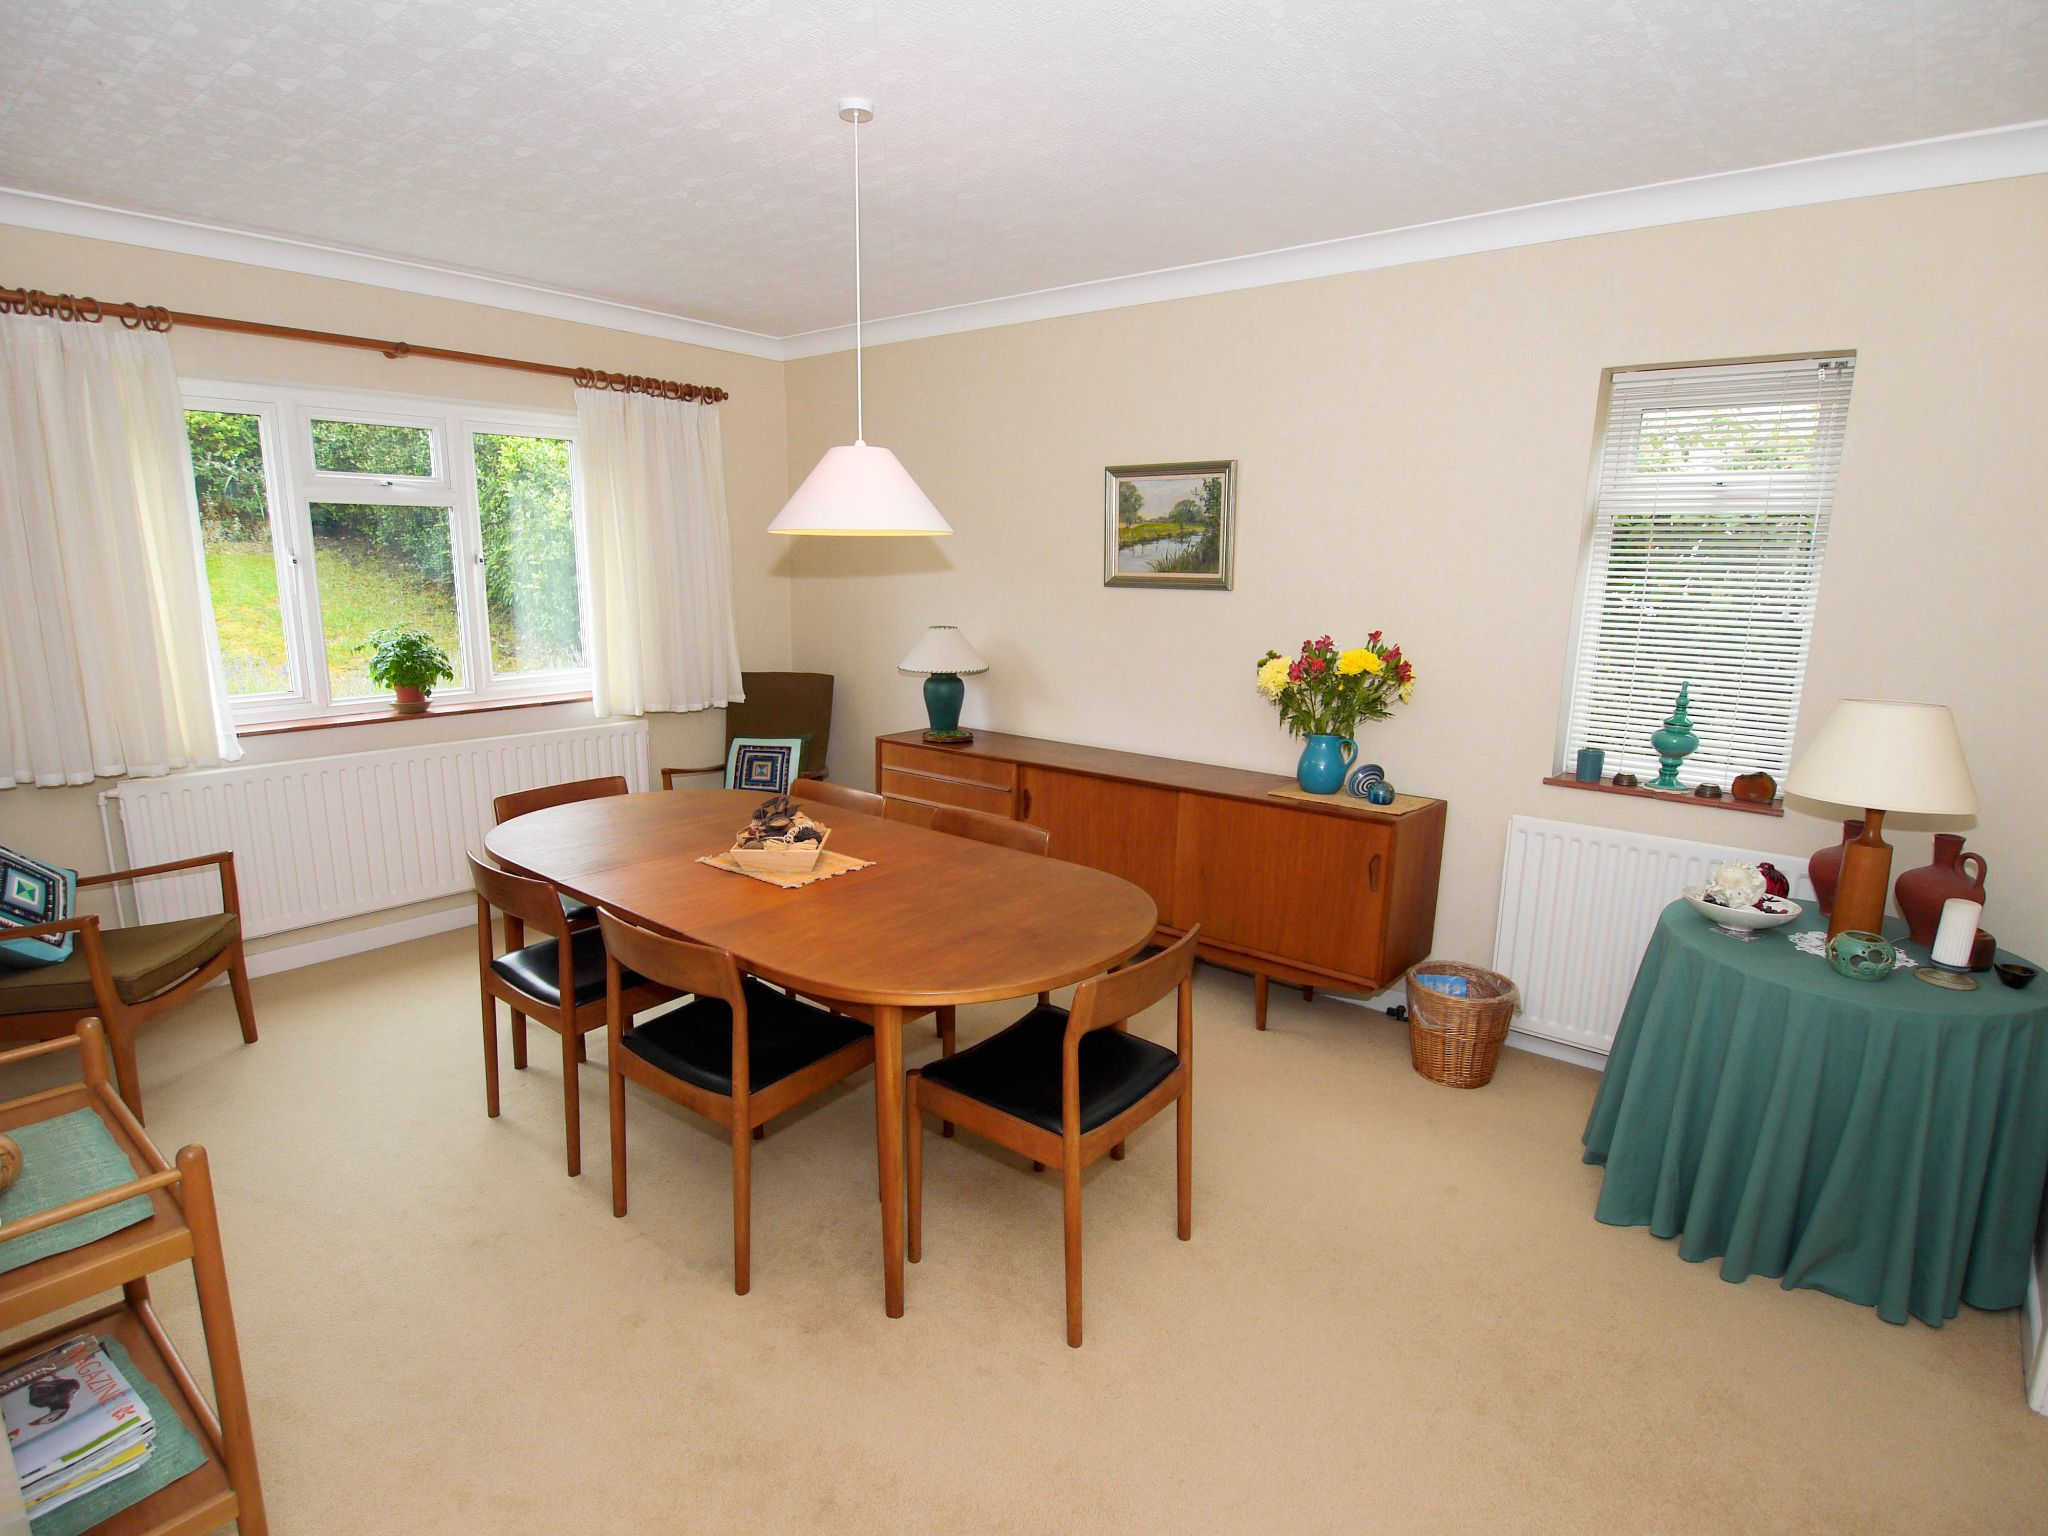 5 bedroom detached house Sold in Sevenoaks - Photograph 5